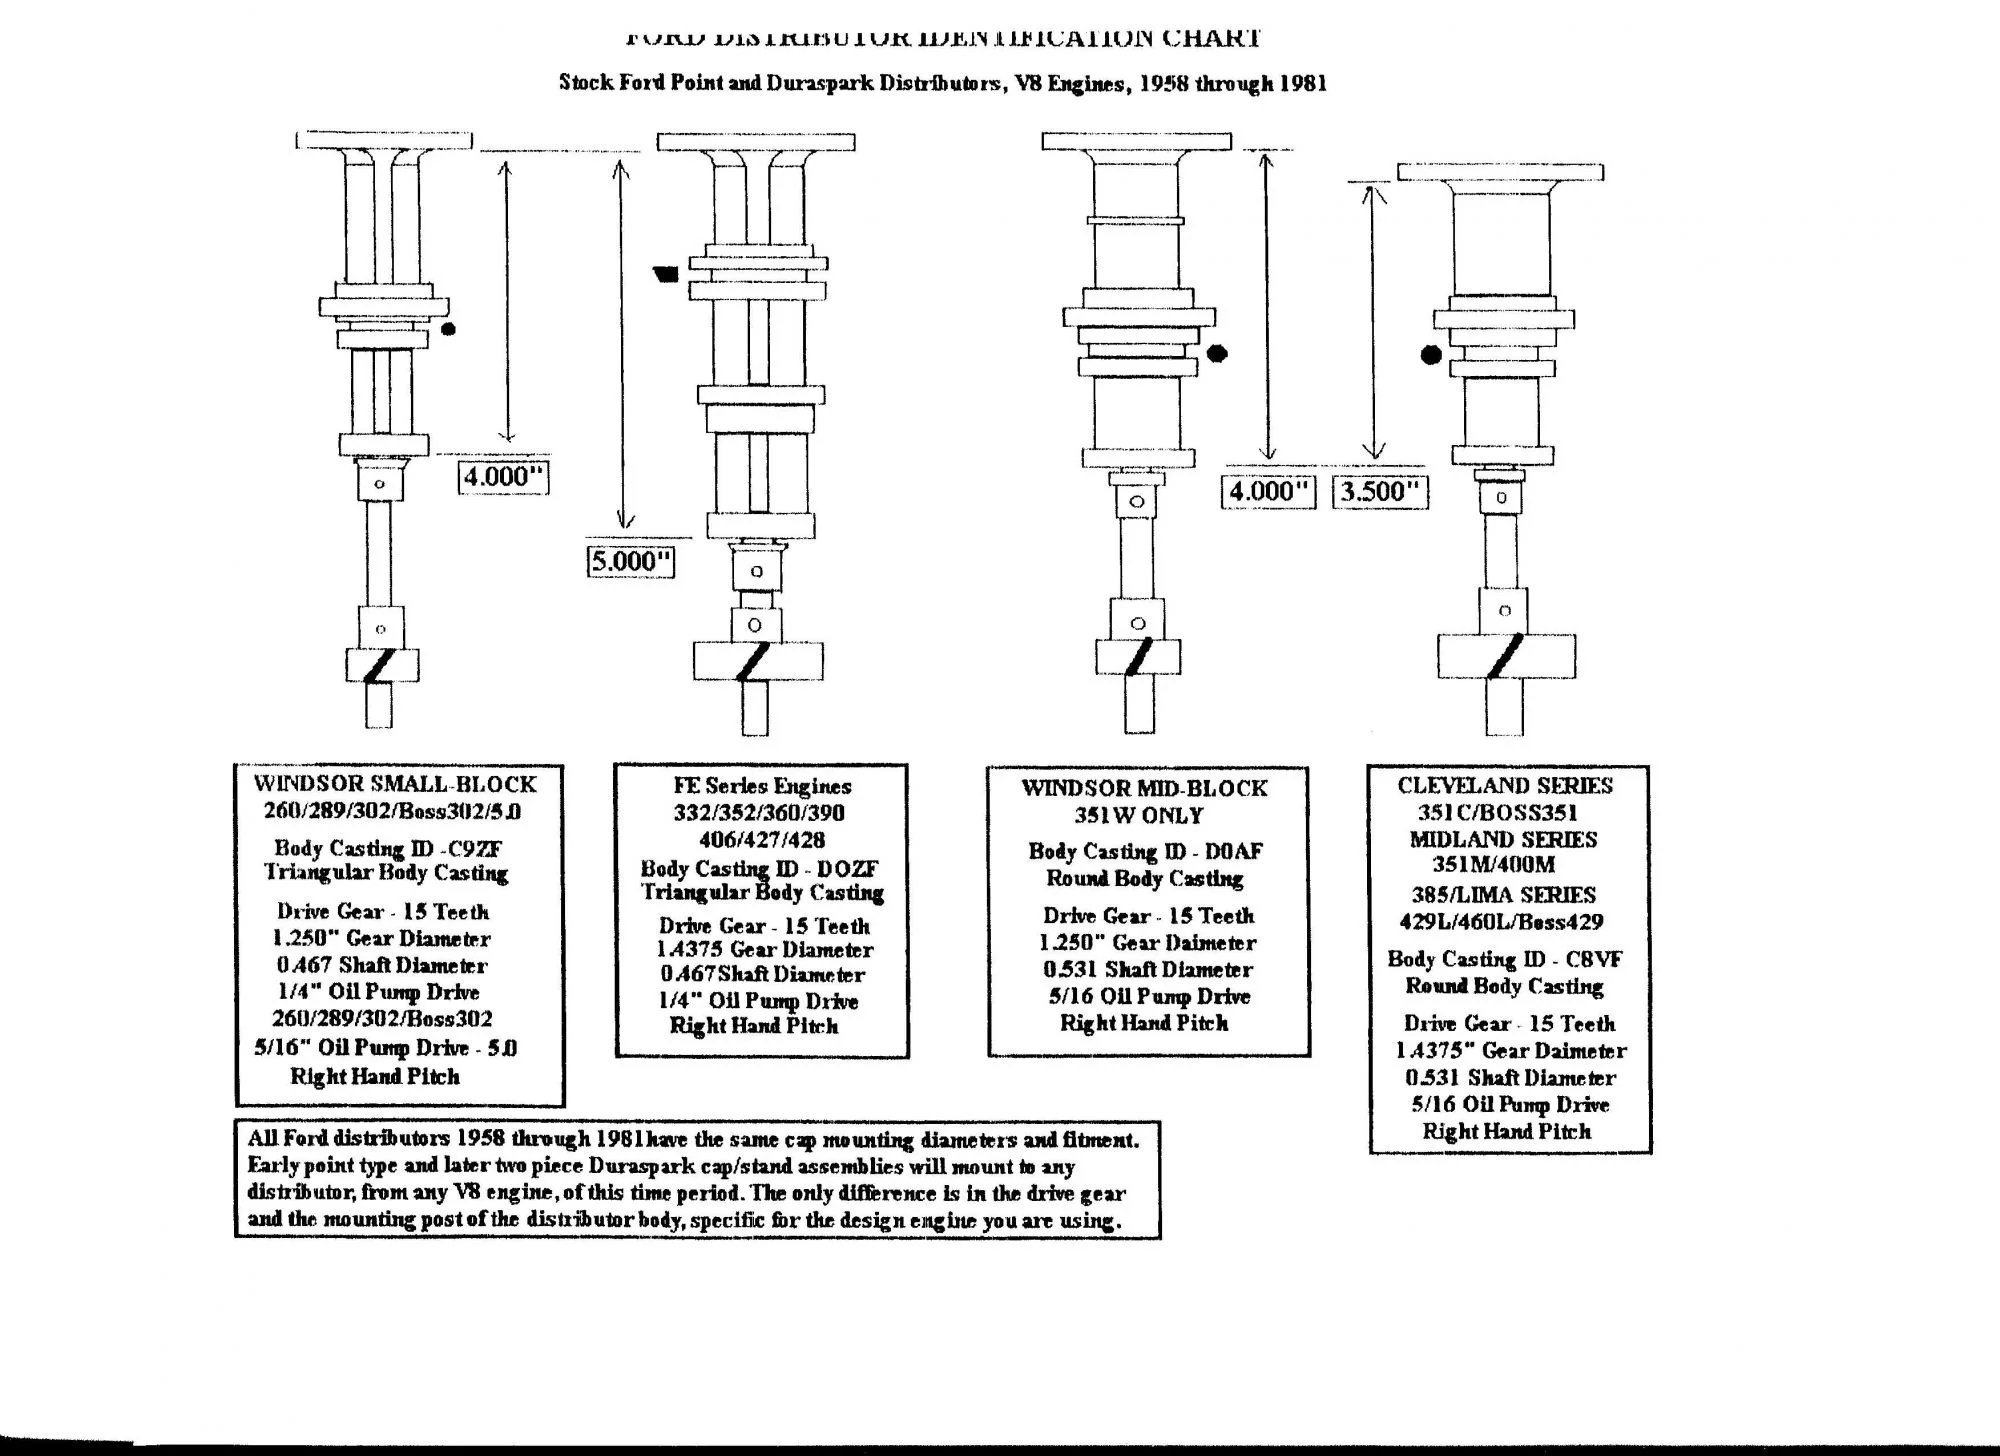 hight resolution of ford v8 distributor identification chart